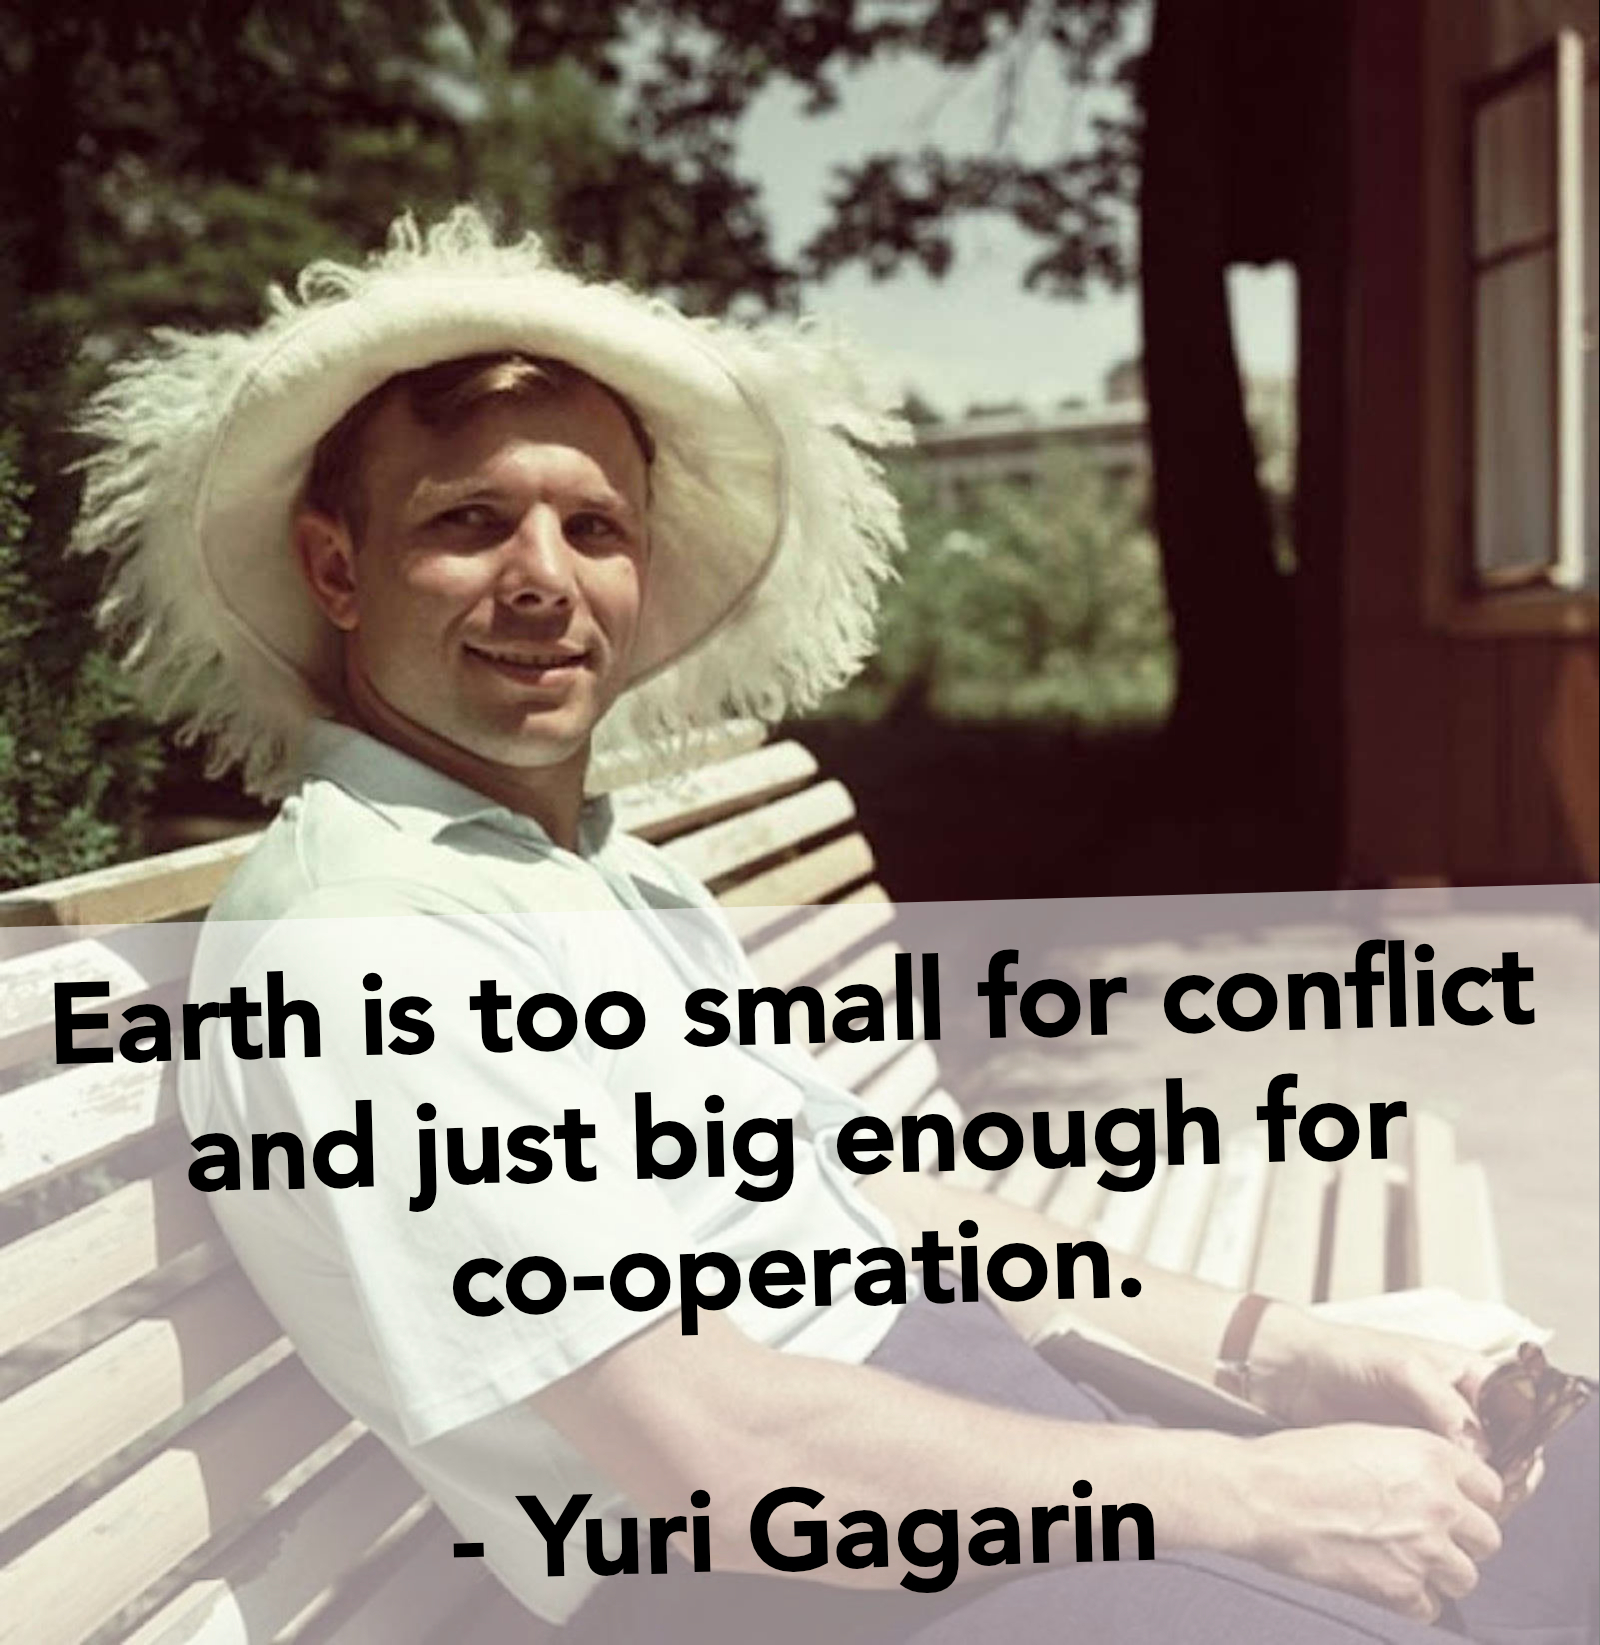 Earth is too small for conflict and just big enough for co-operation. – Yuri Gagarin [Image]